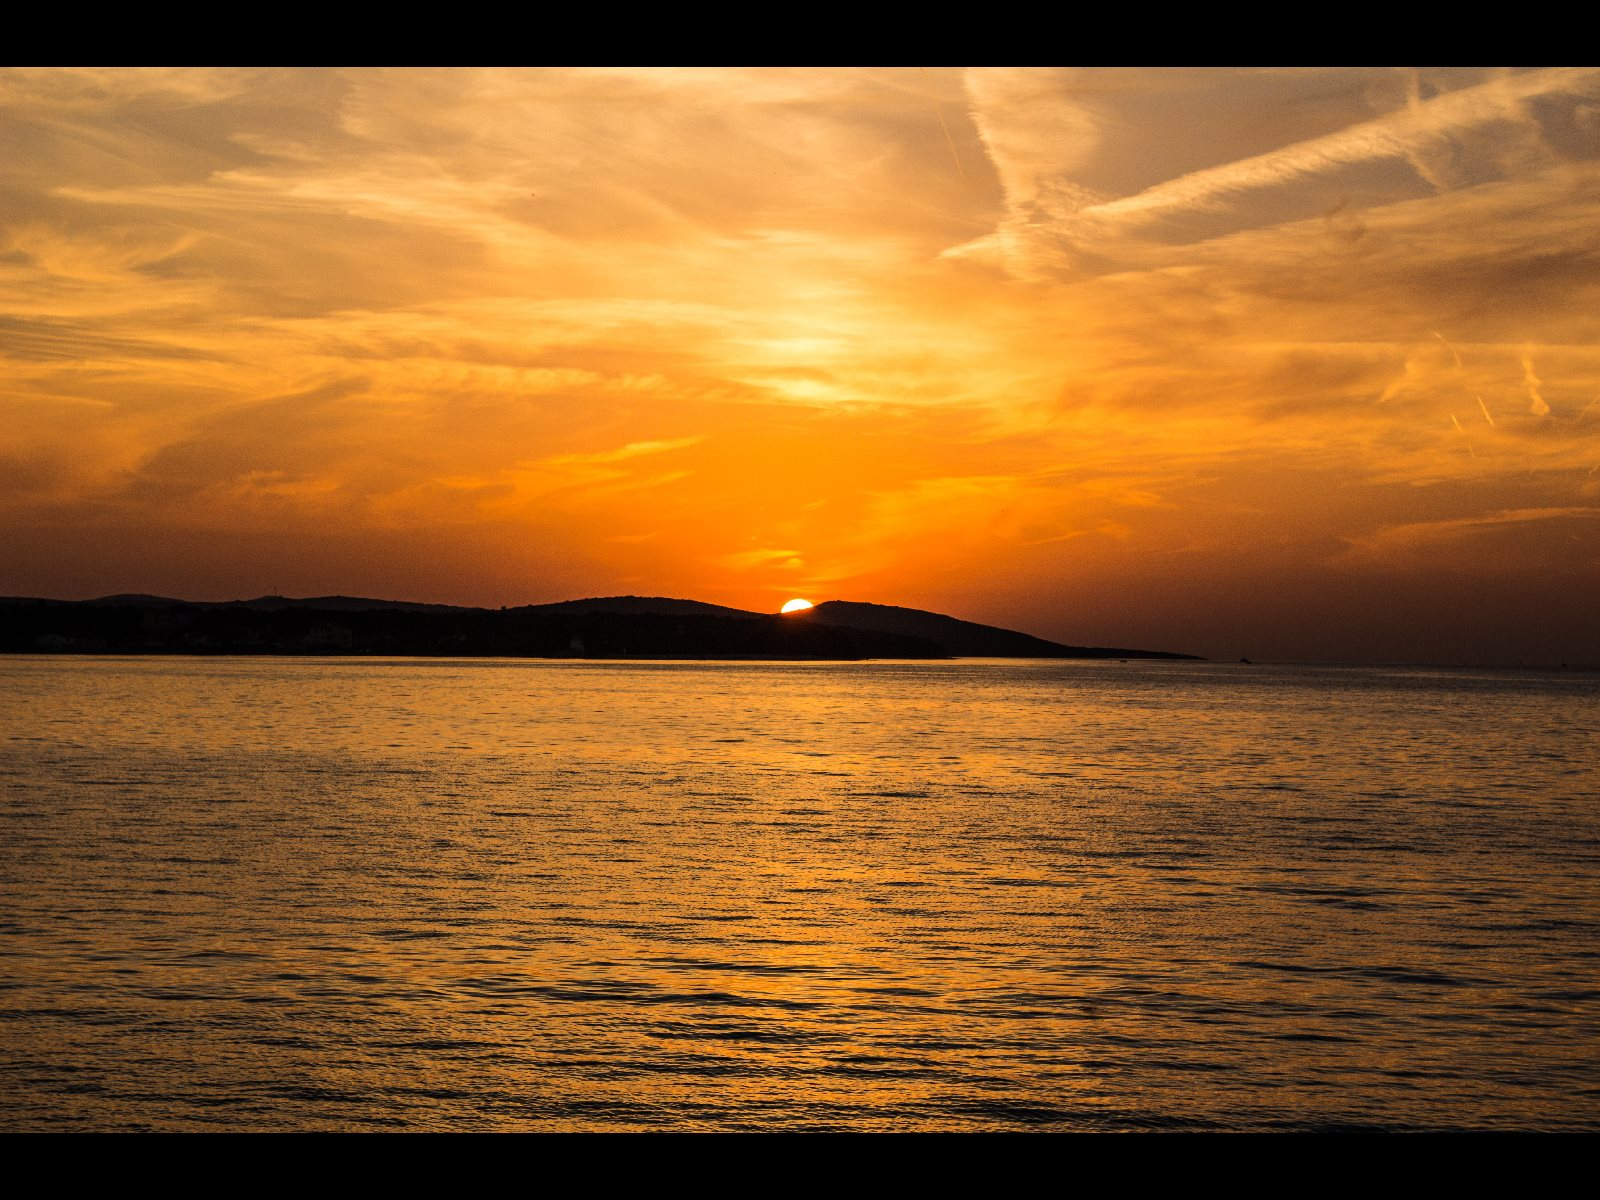 -images-excursions-sunset-panorama-sunset-523912.jpg